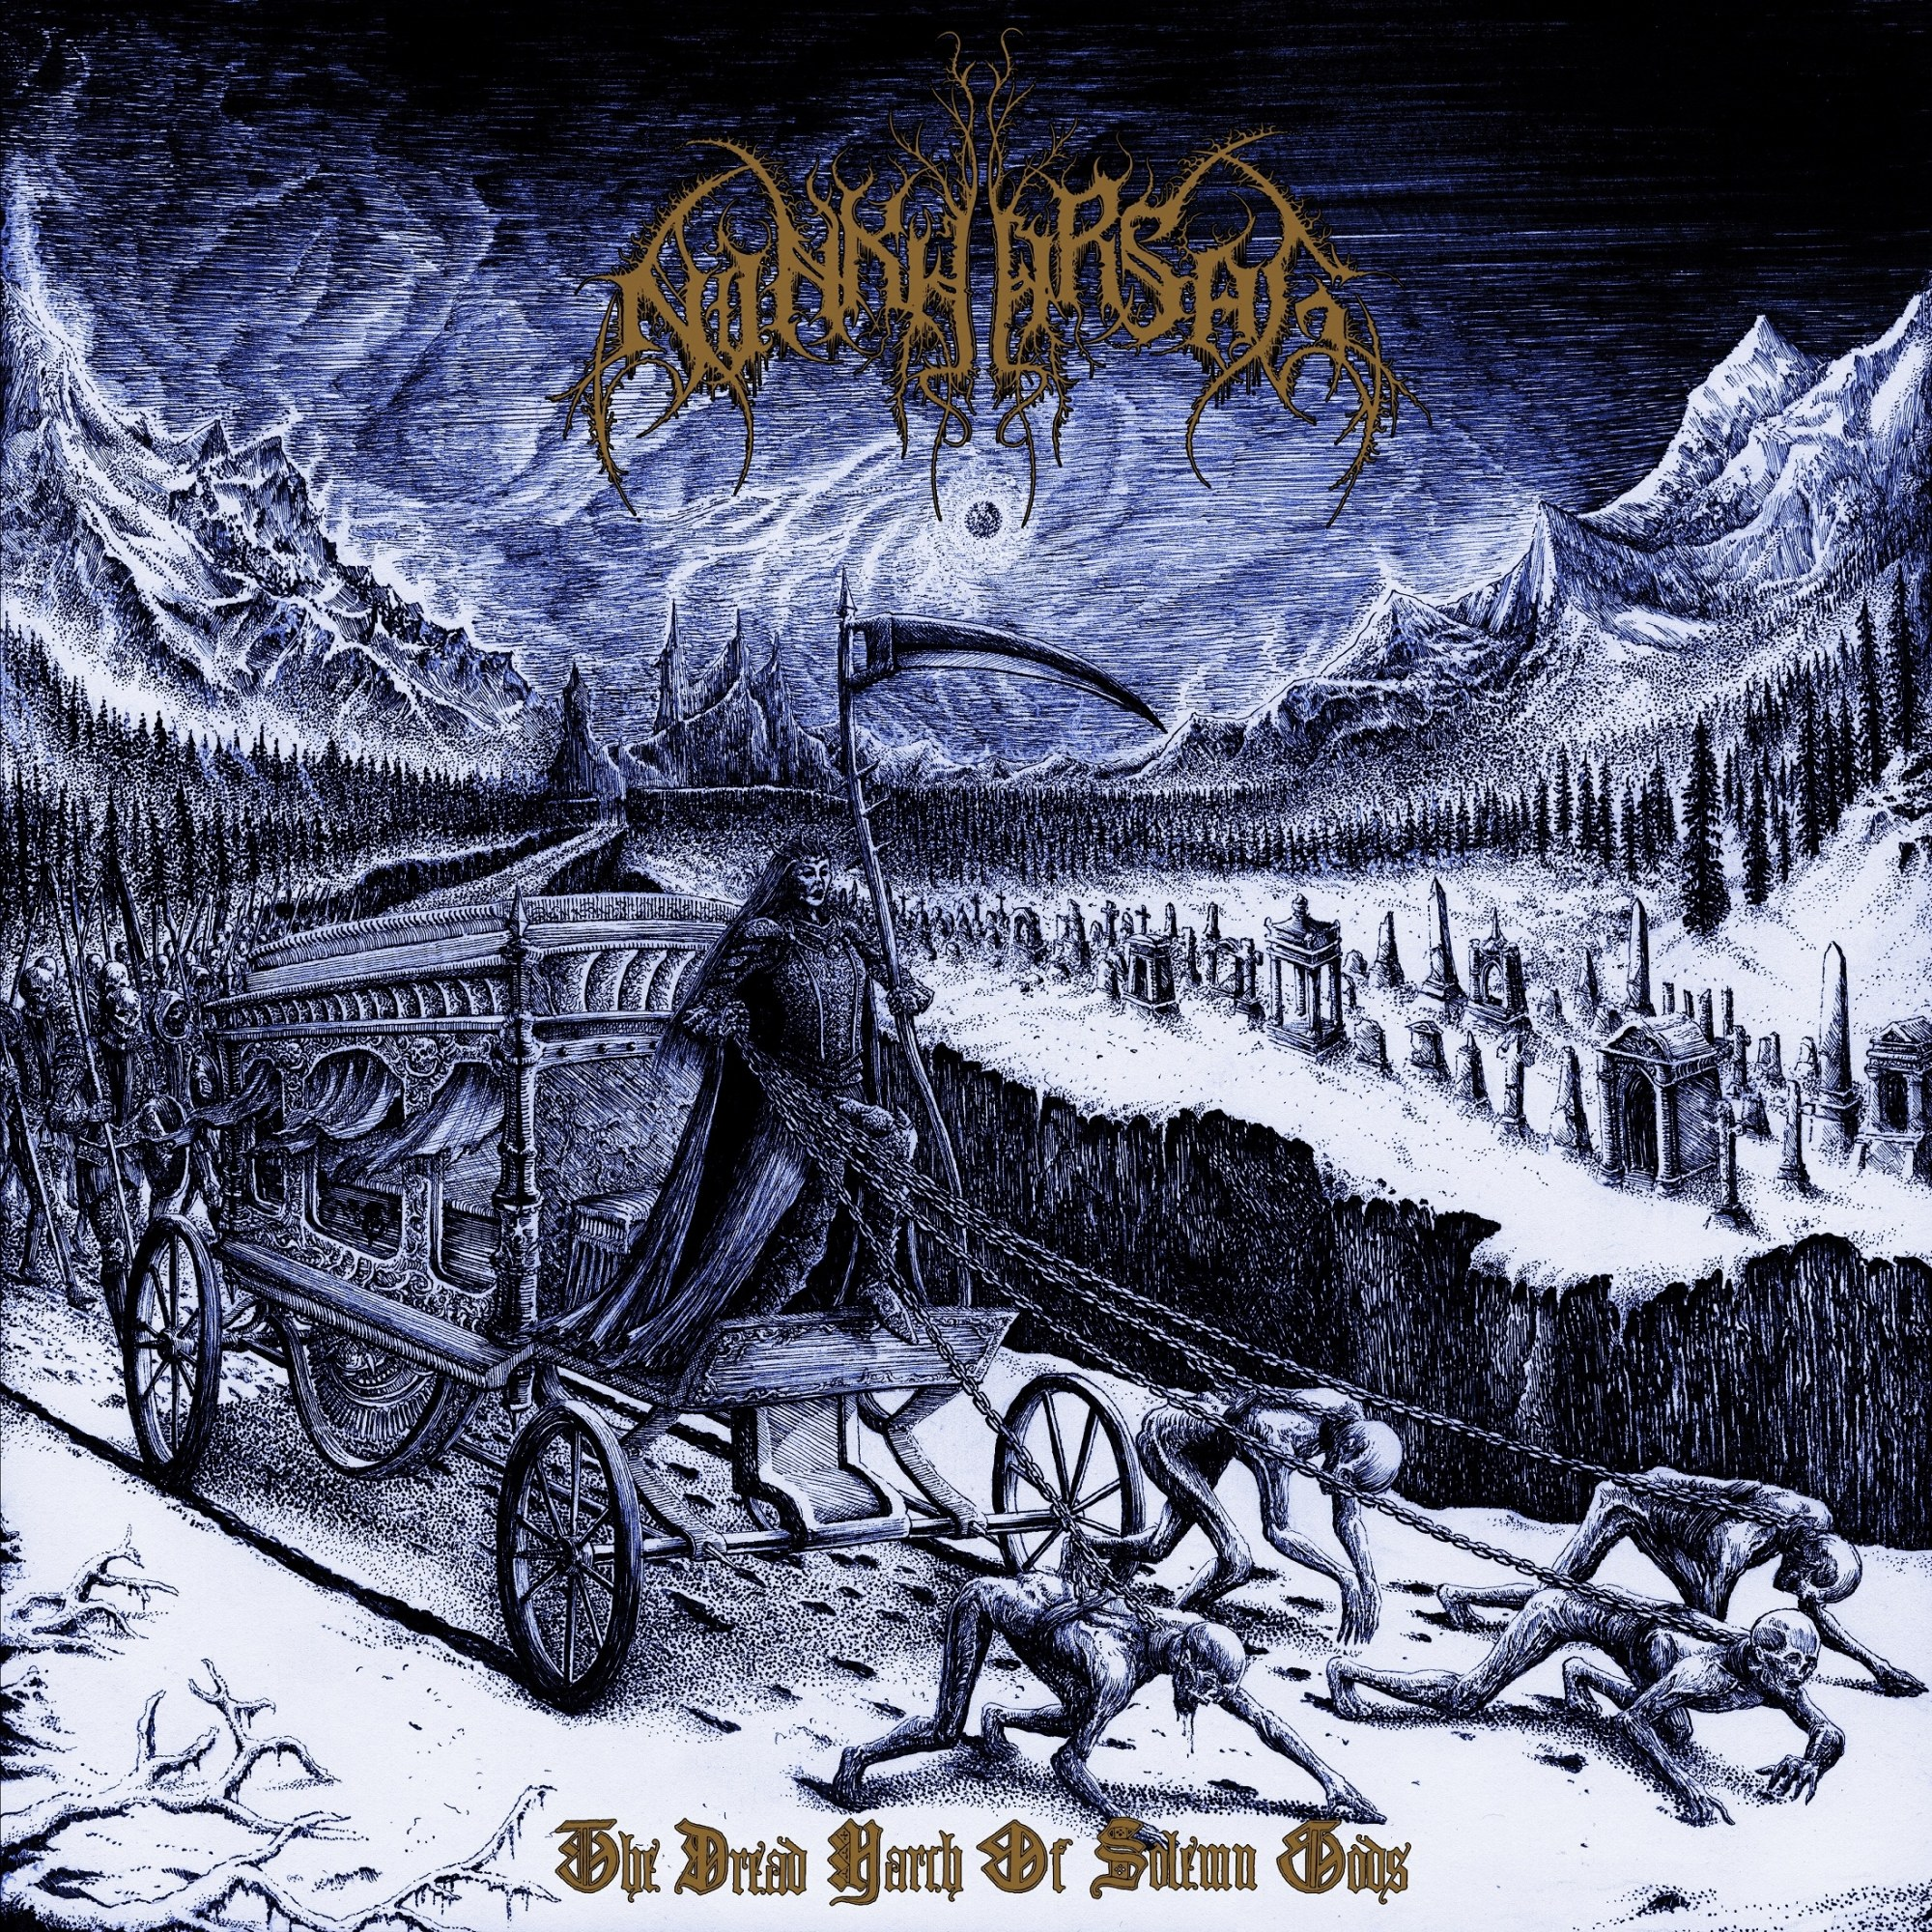 Reviews for Ninkharsag - The Dread March of Solemn Gods